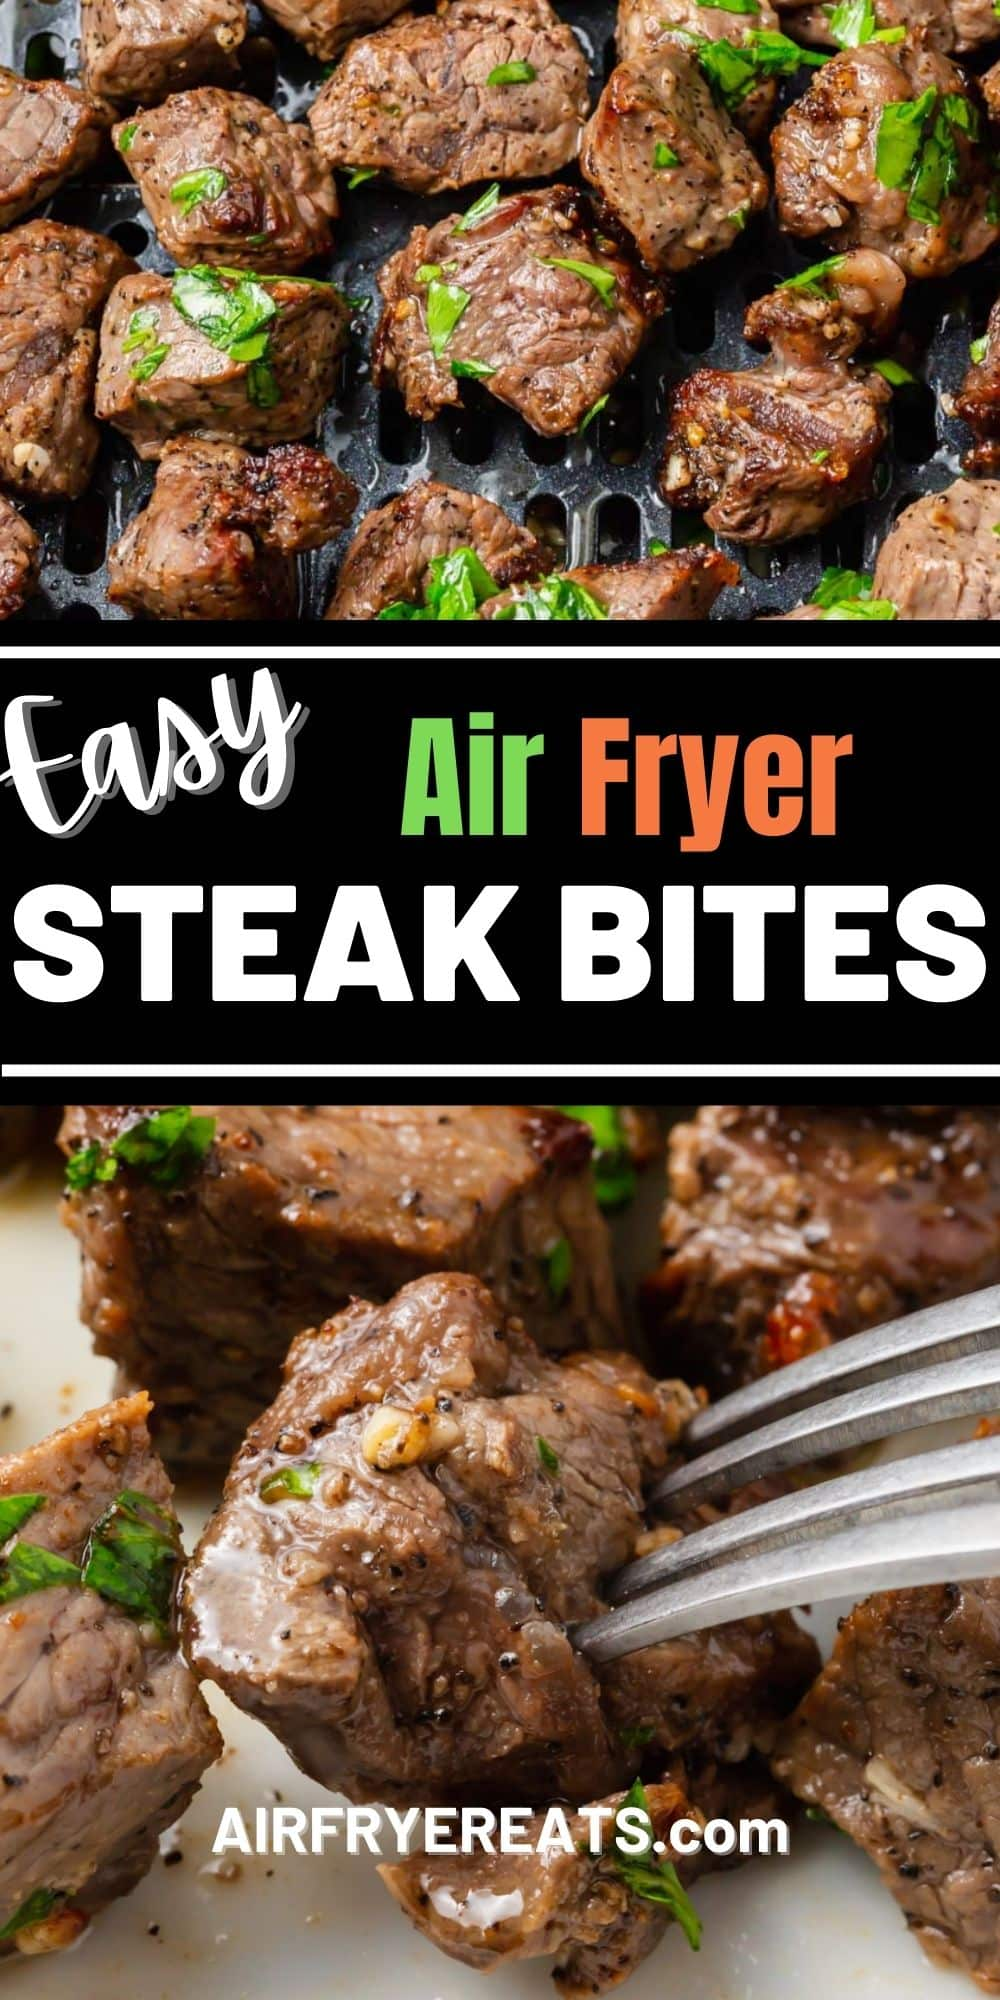 Air Fryer Steak Bites are an easy and convenient way to cook steak that is perfectly cooked and in bite sized pieces. #airfryersteak via @vegetarianmamma